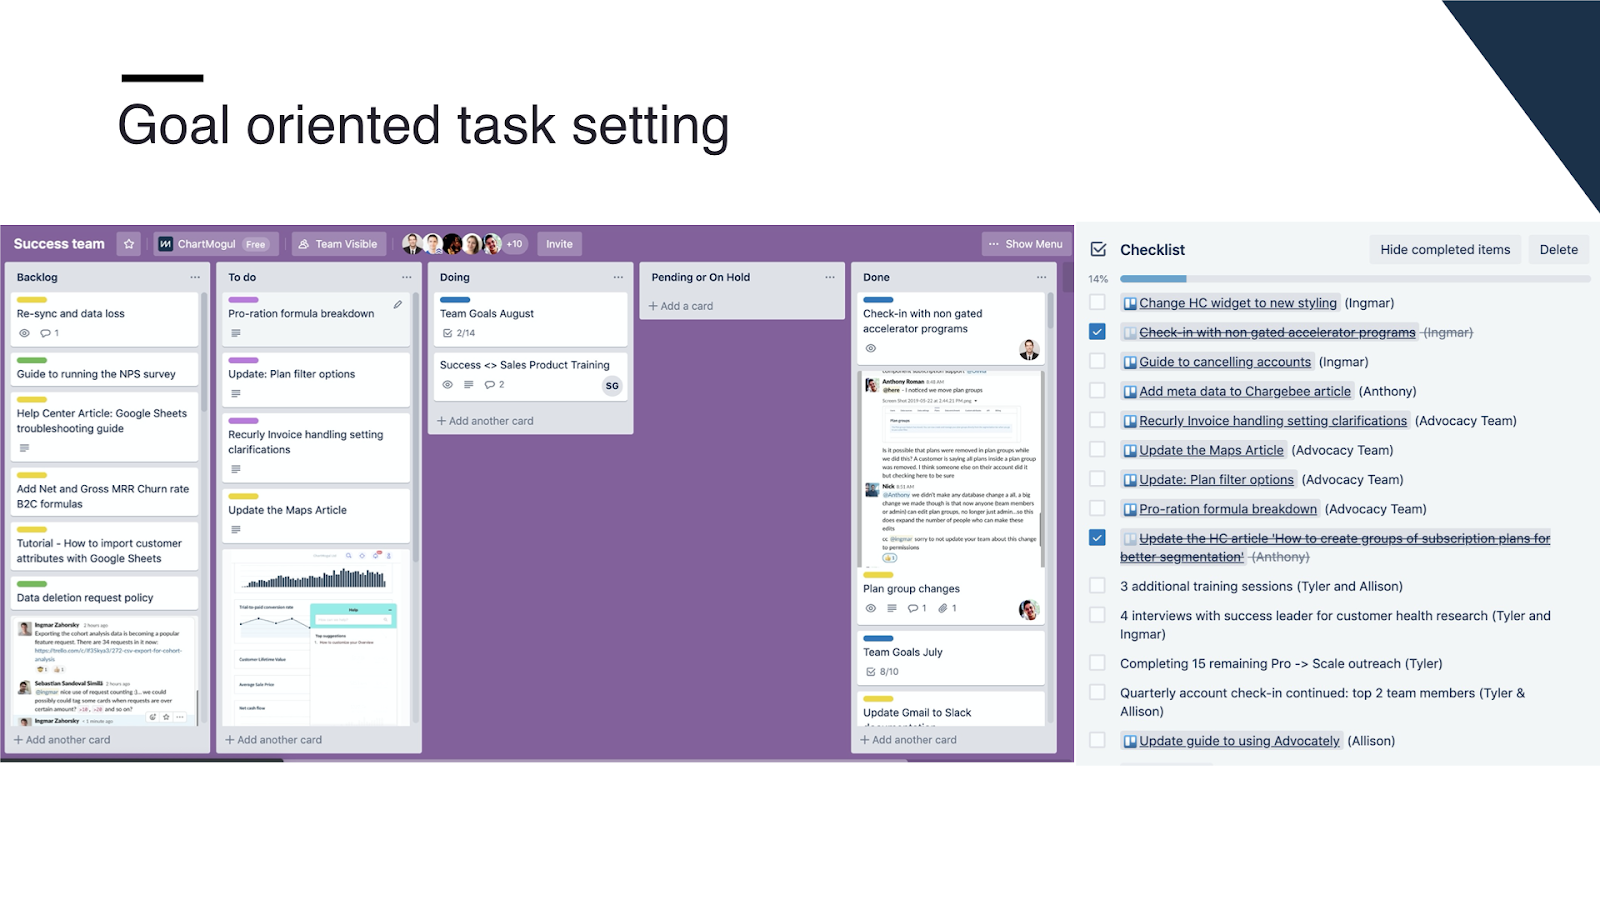 Goal-oriented task setting